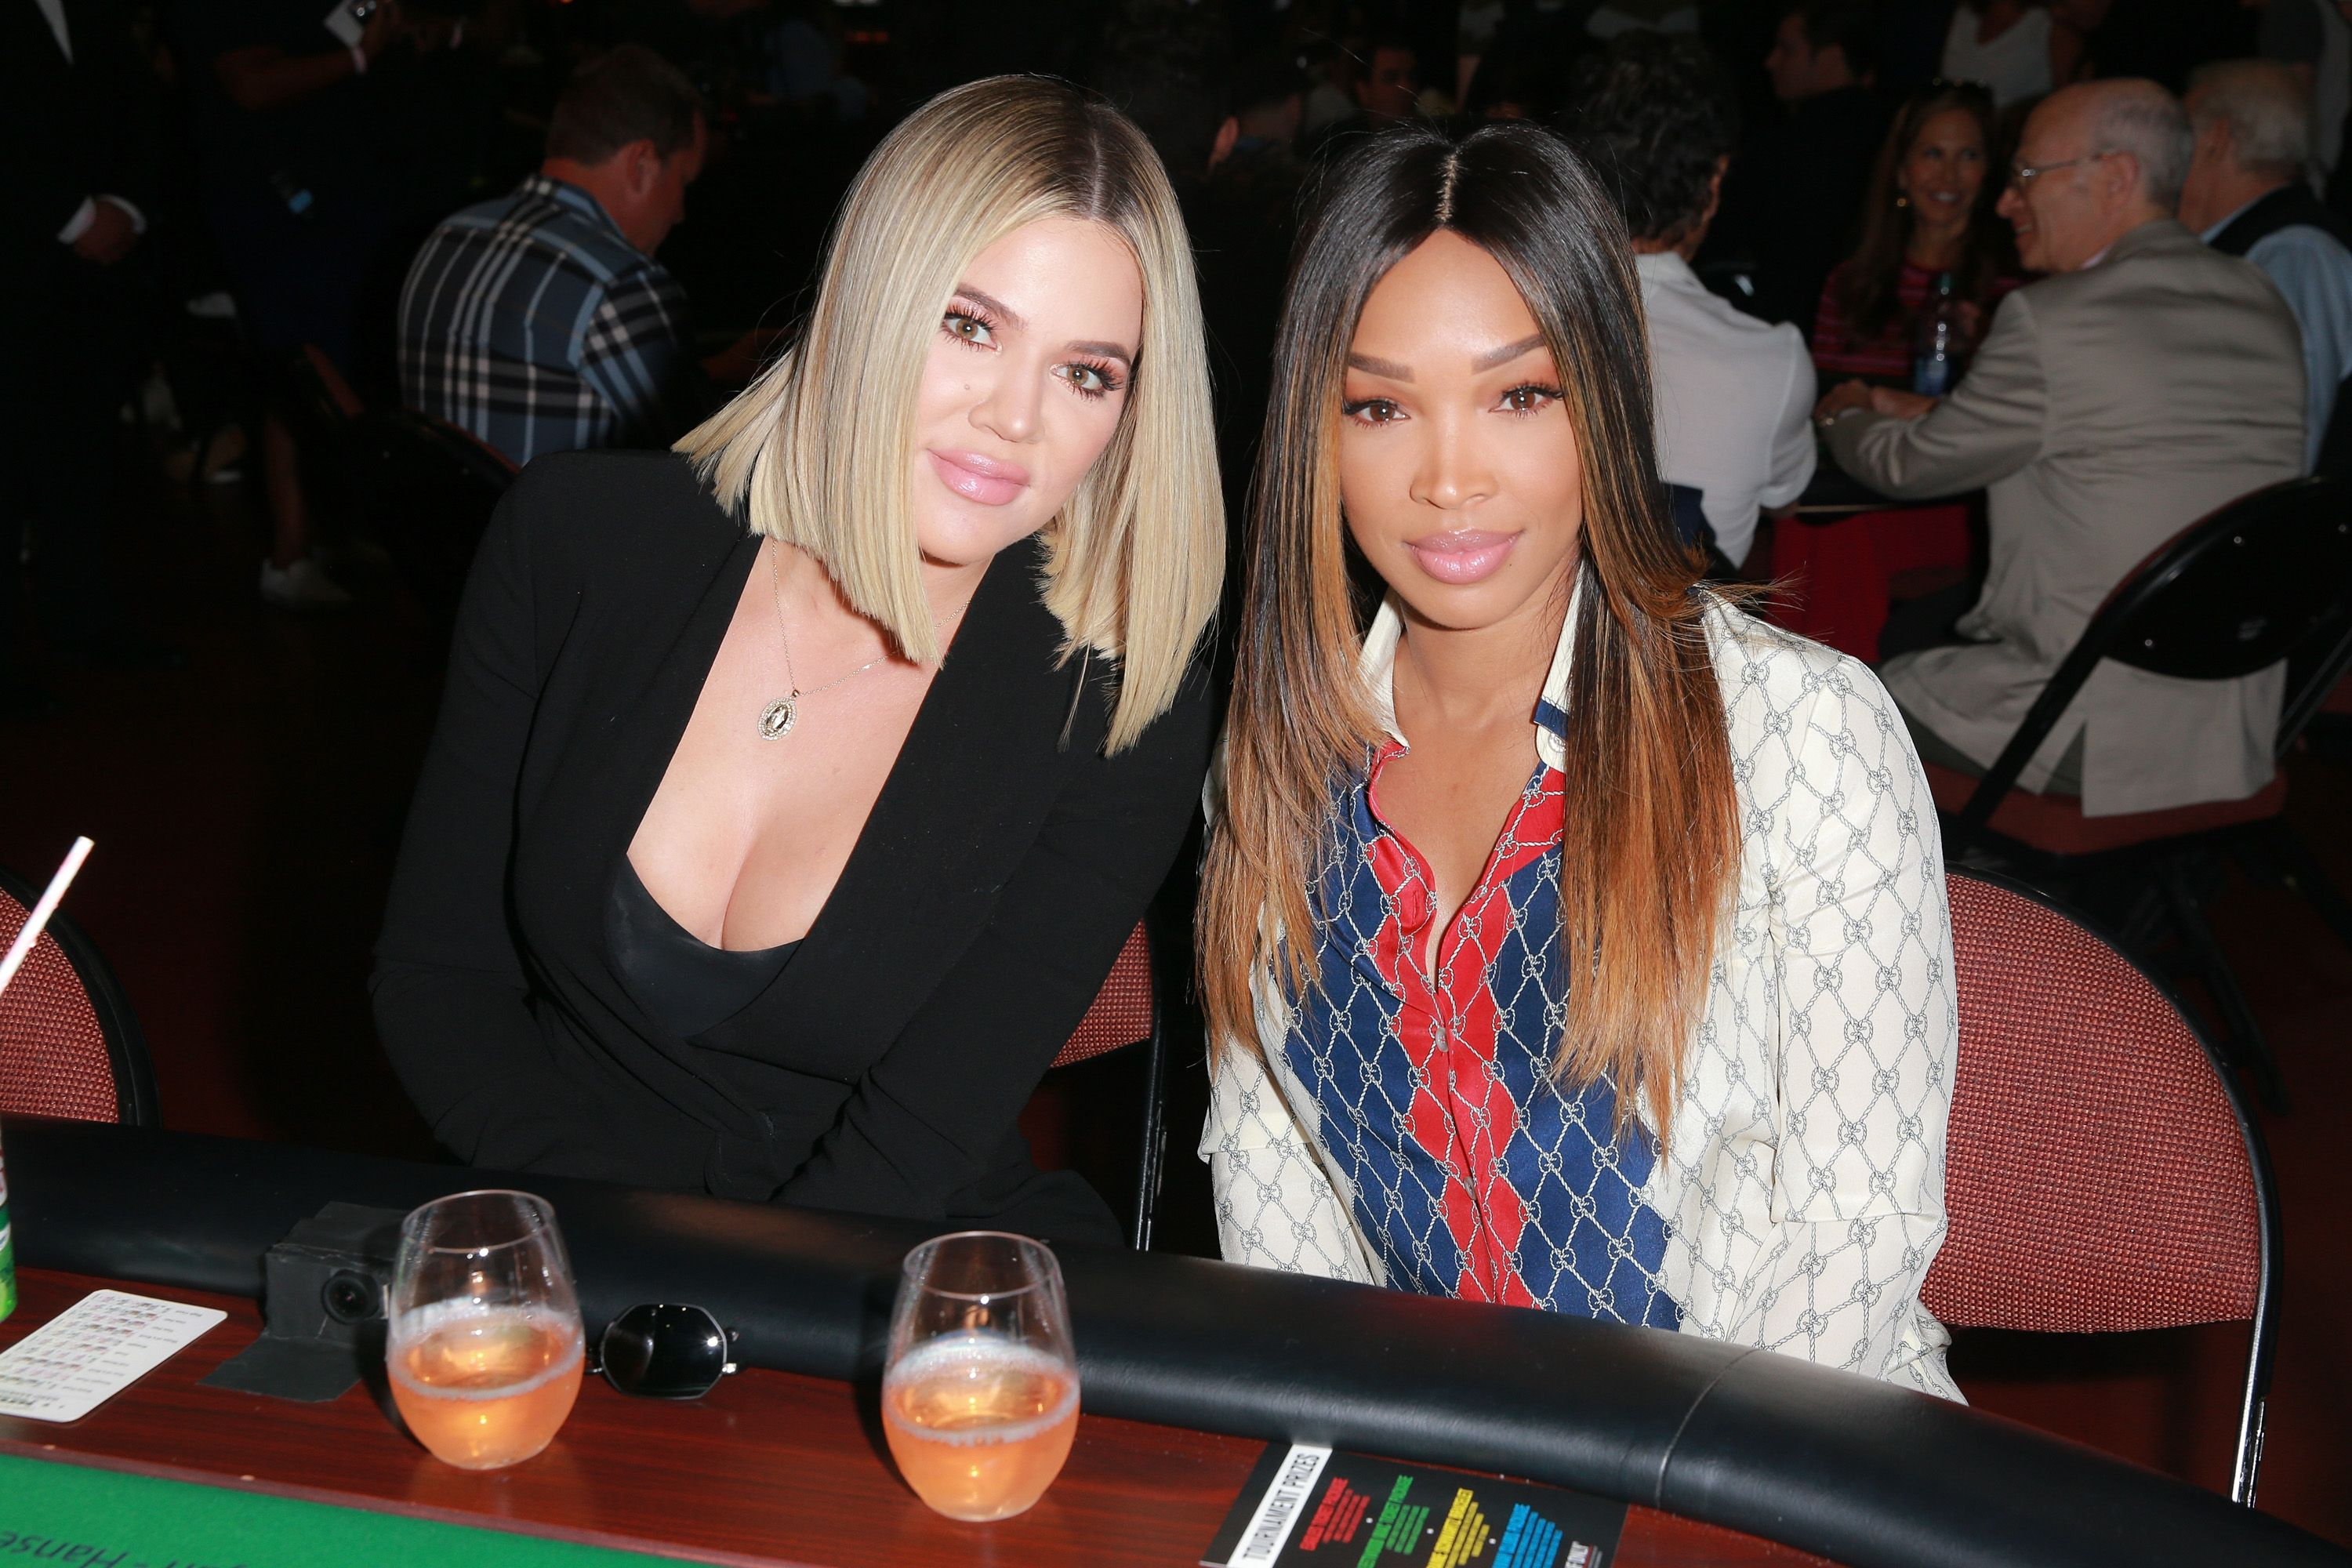 """Khloe Kardashian & Malika Haqq at the first annual """"If Only"""" Texas hold'em charity poker tournament on July 29, 2018. 